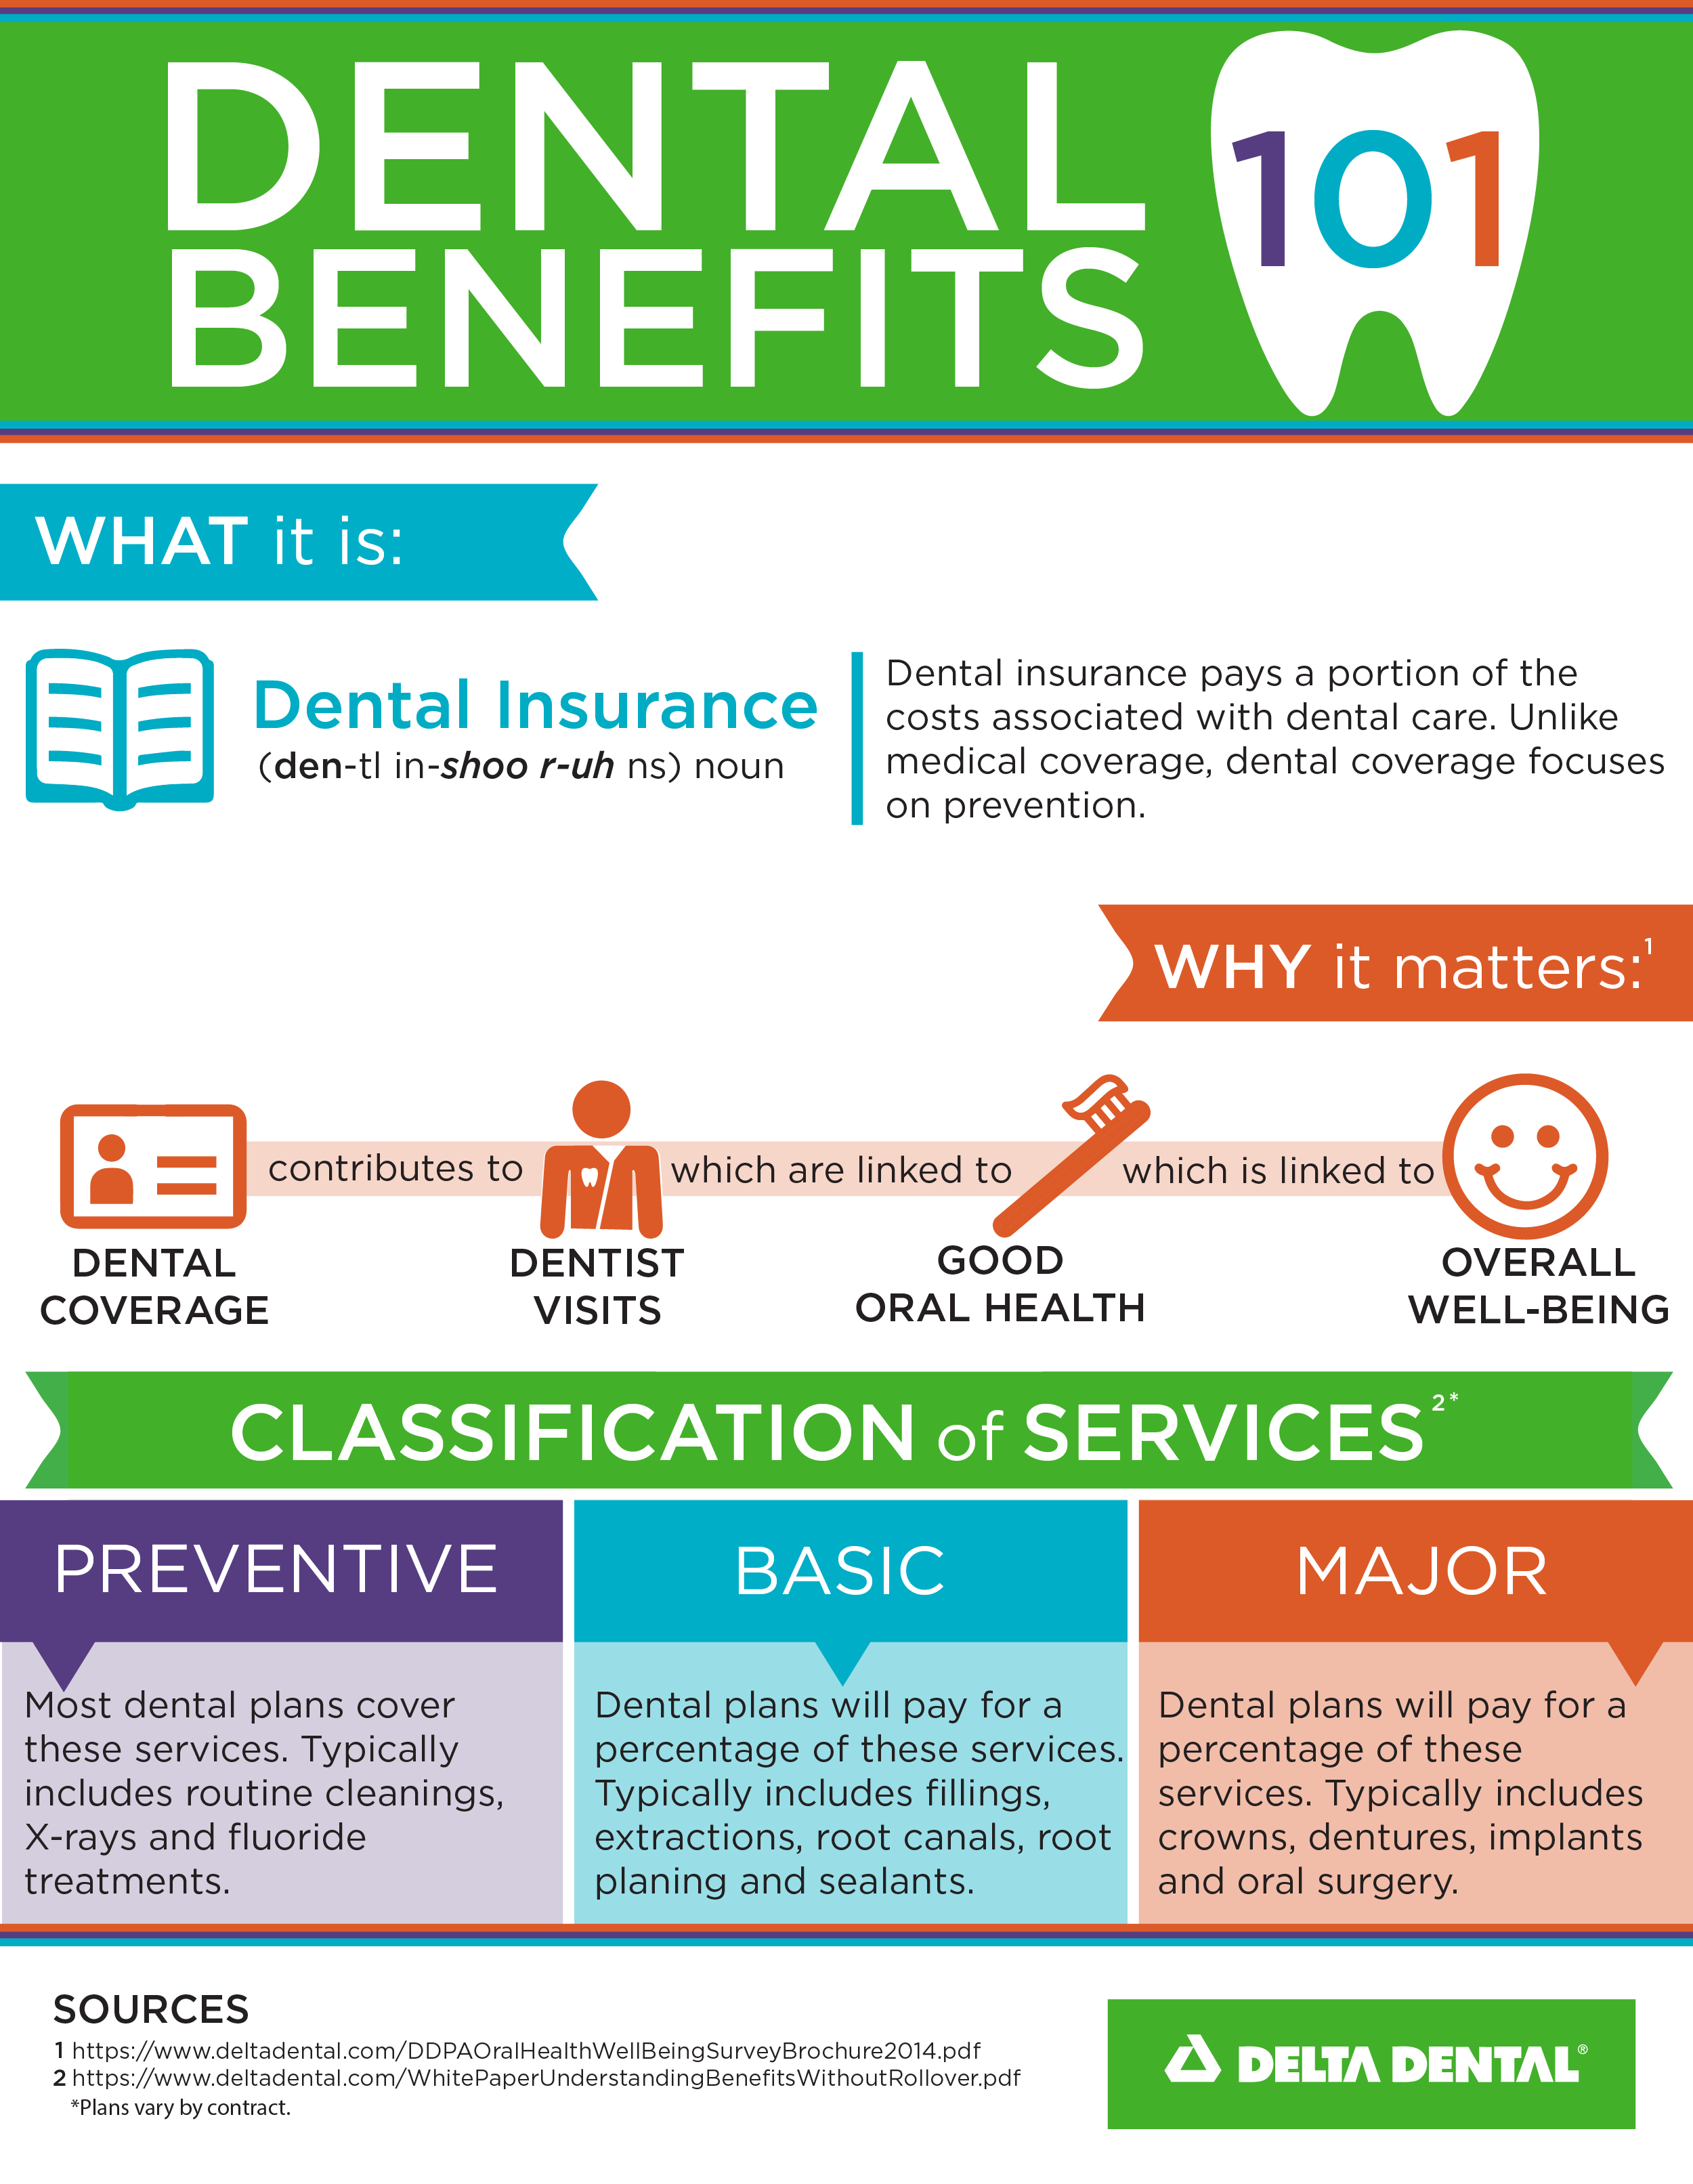 Dental Benefits 101 Infographic_Revised_0316-02